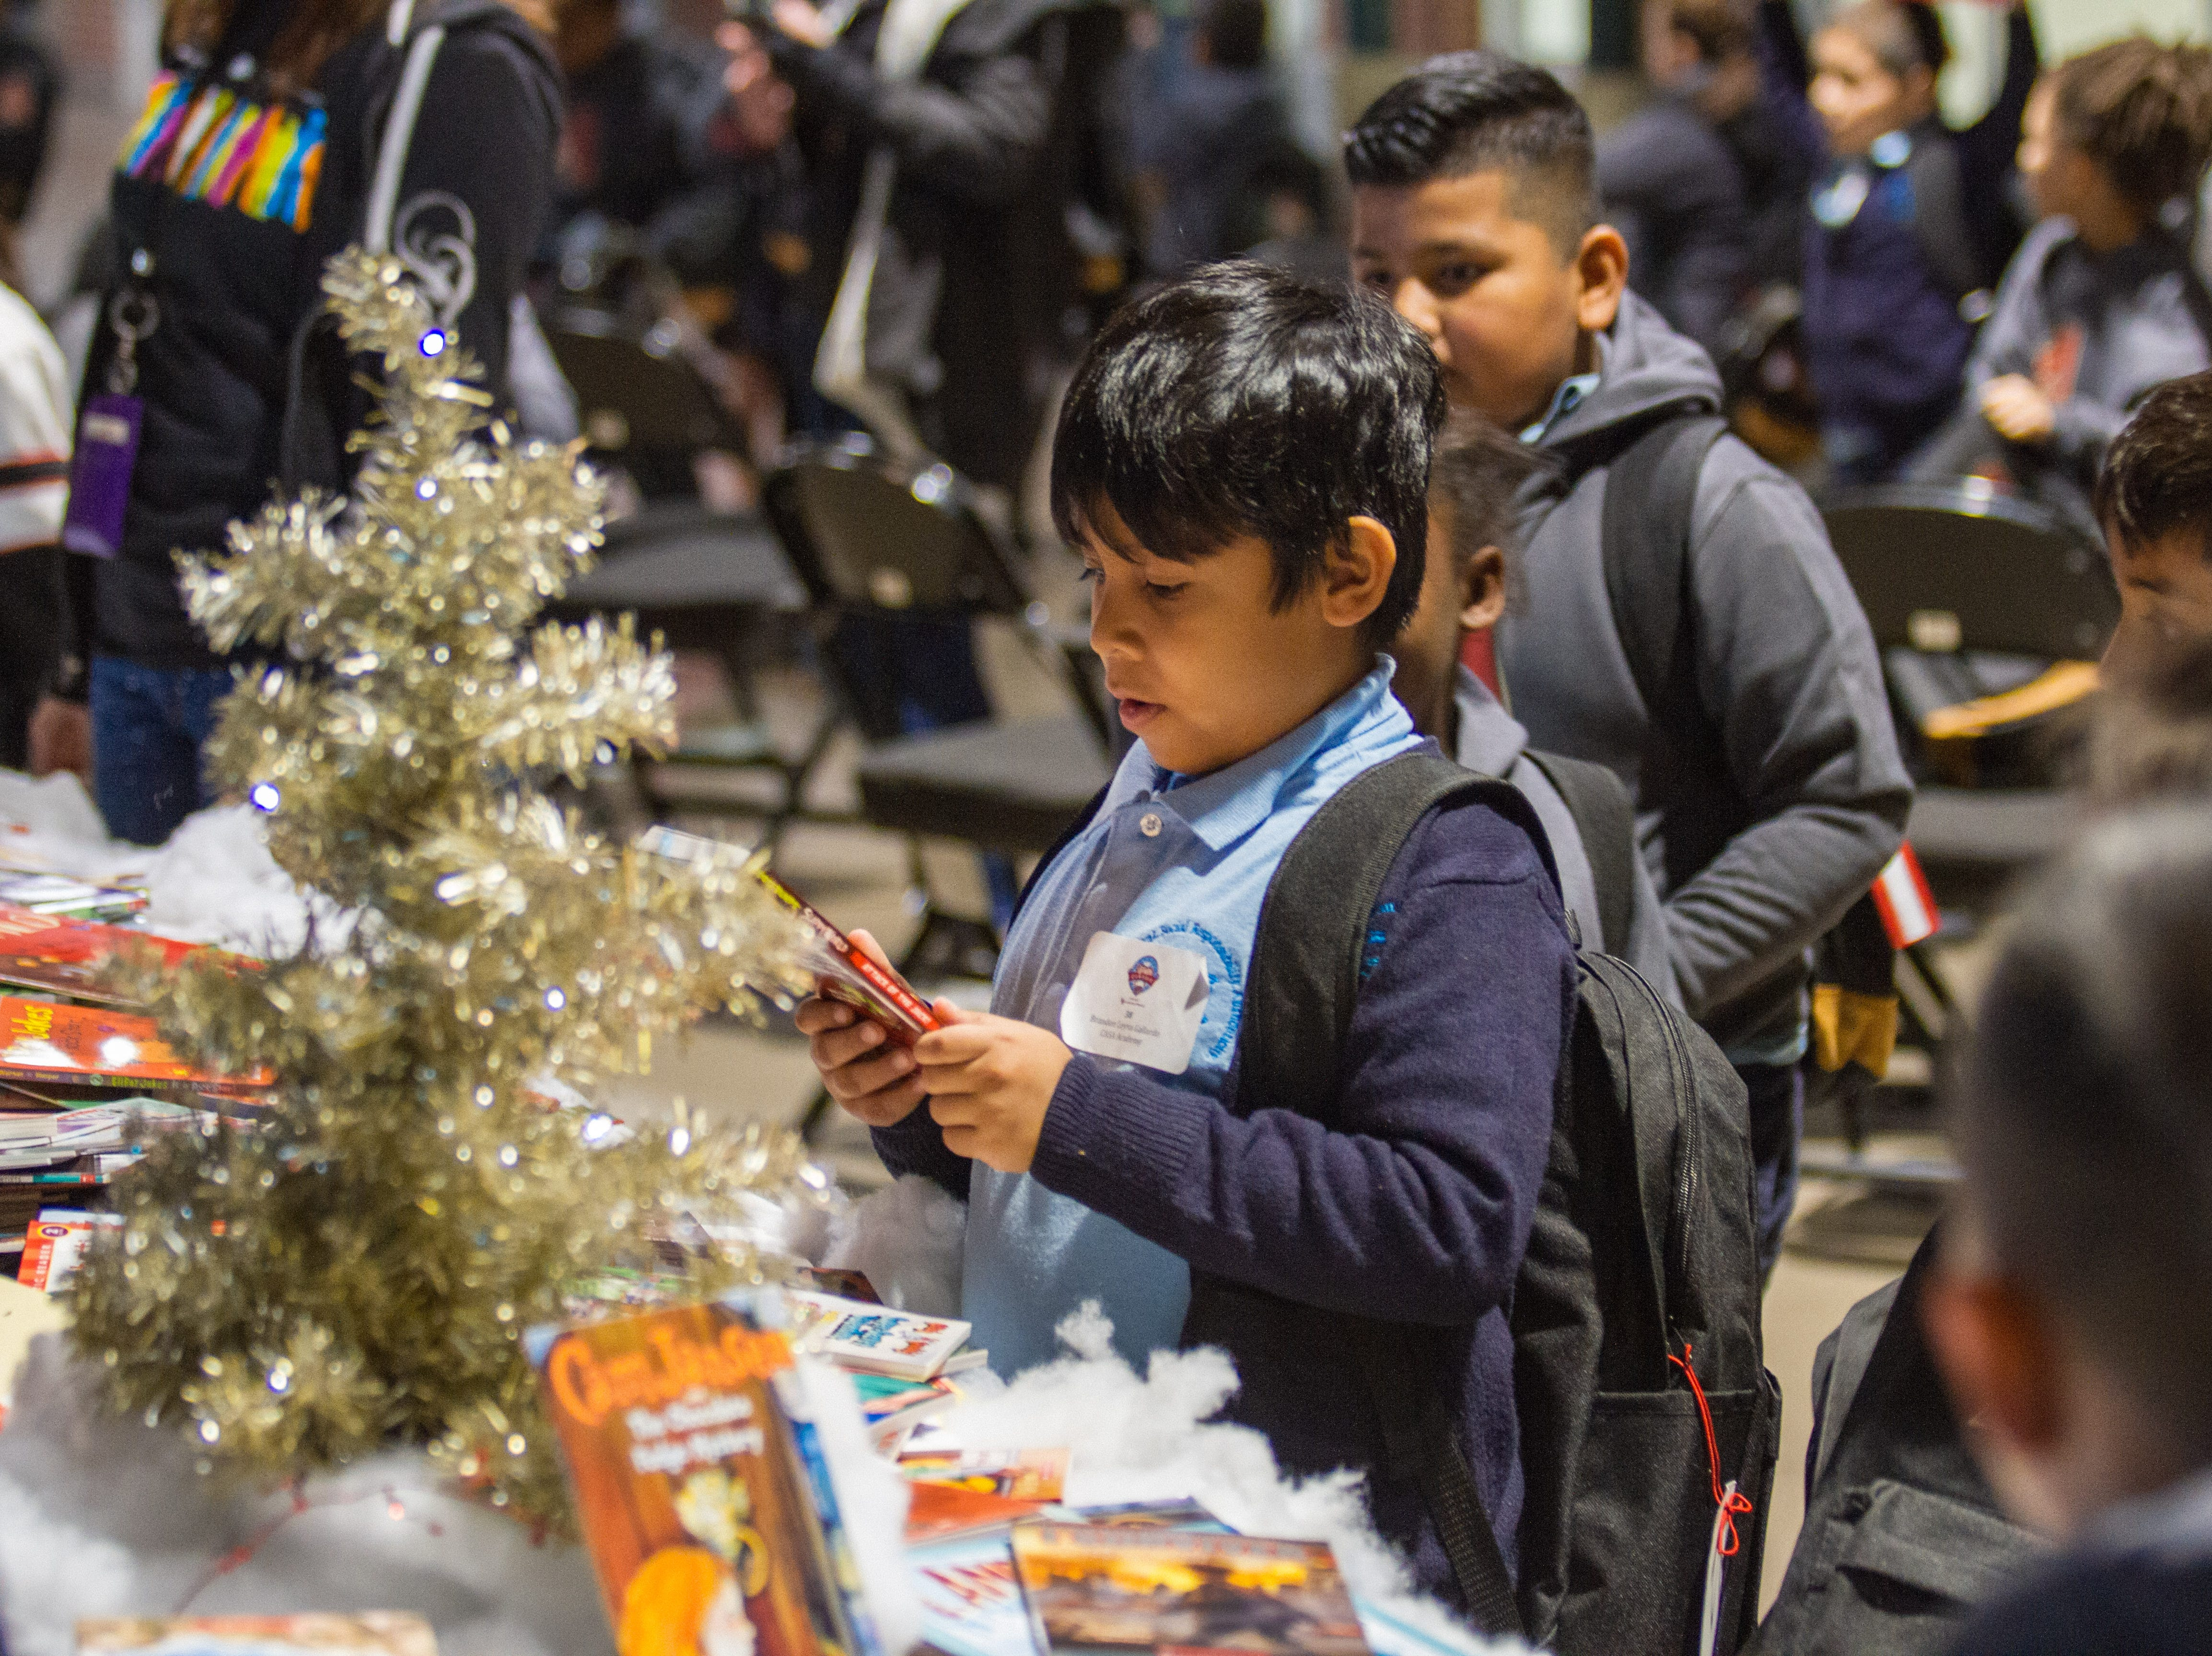 Children pick up coloring supplies  during the Arizona Diamondbacks annual Winter Classic Holiday Party inside Chase Field in Phoenix, Arizona on Friday, Dec. 14, 2018.